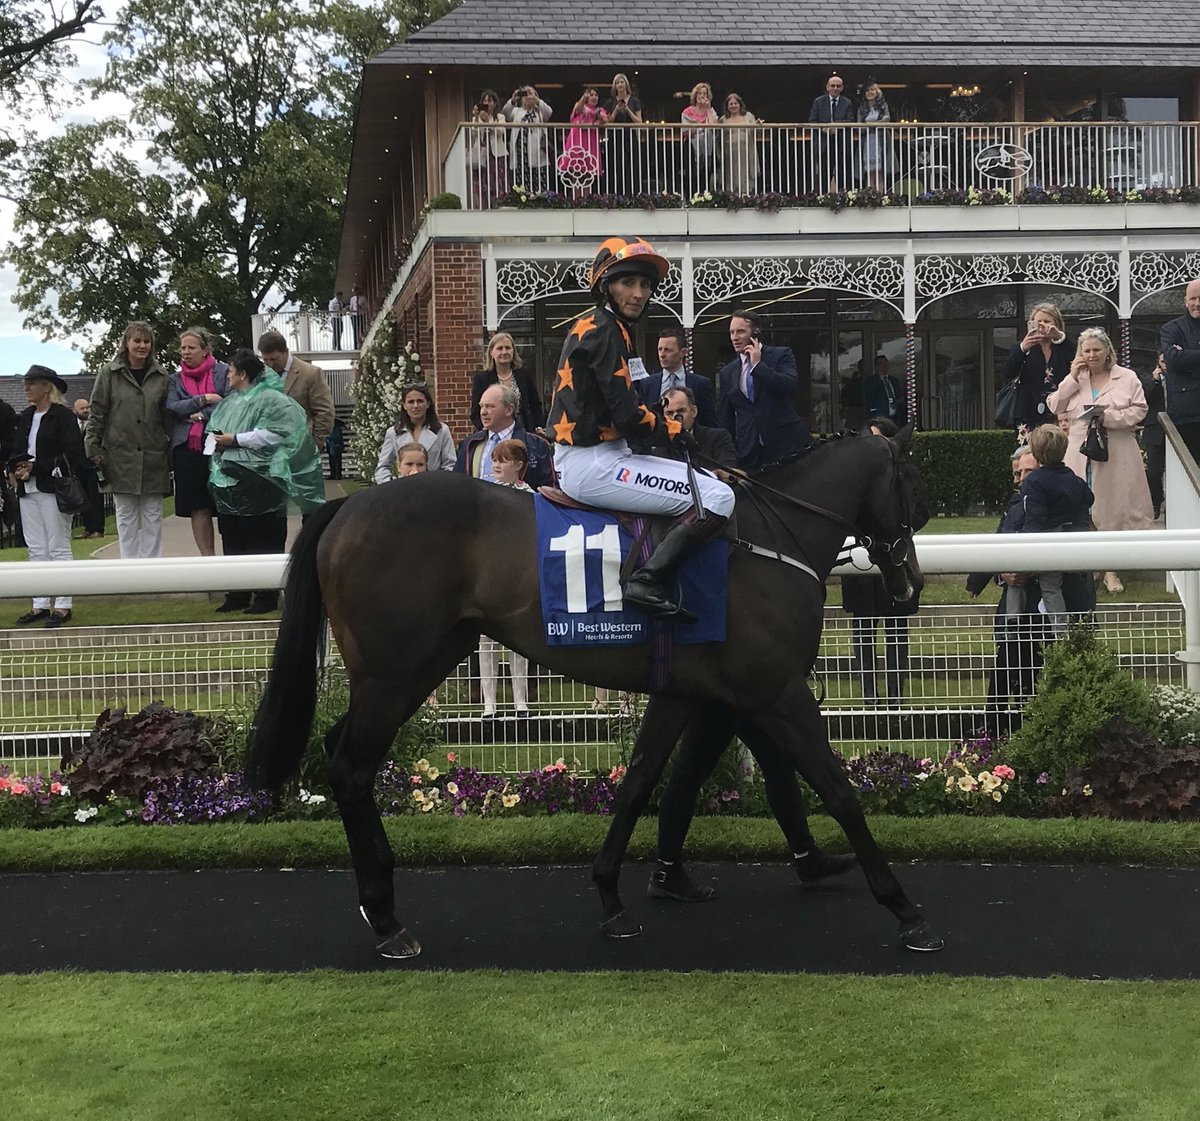 Golconda Prince runs today @HamiltonParkRC with Paul on board and Sugar Coating has been declared @NewcastleRaces tomorrow evening with @Tonyhamilton83 in the saddle. Get involved and join the club today! https://t.co/WnaDJpcabU